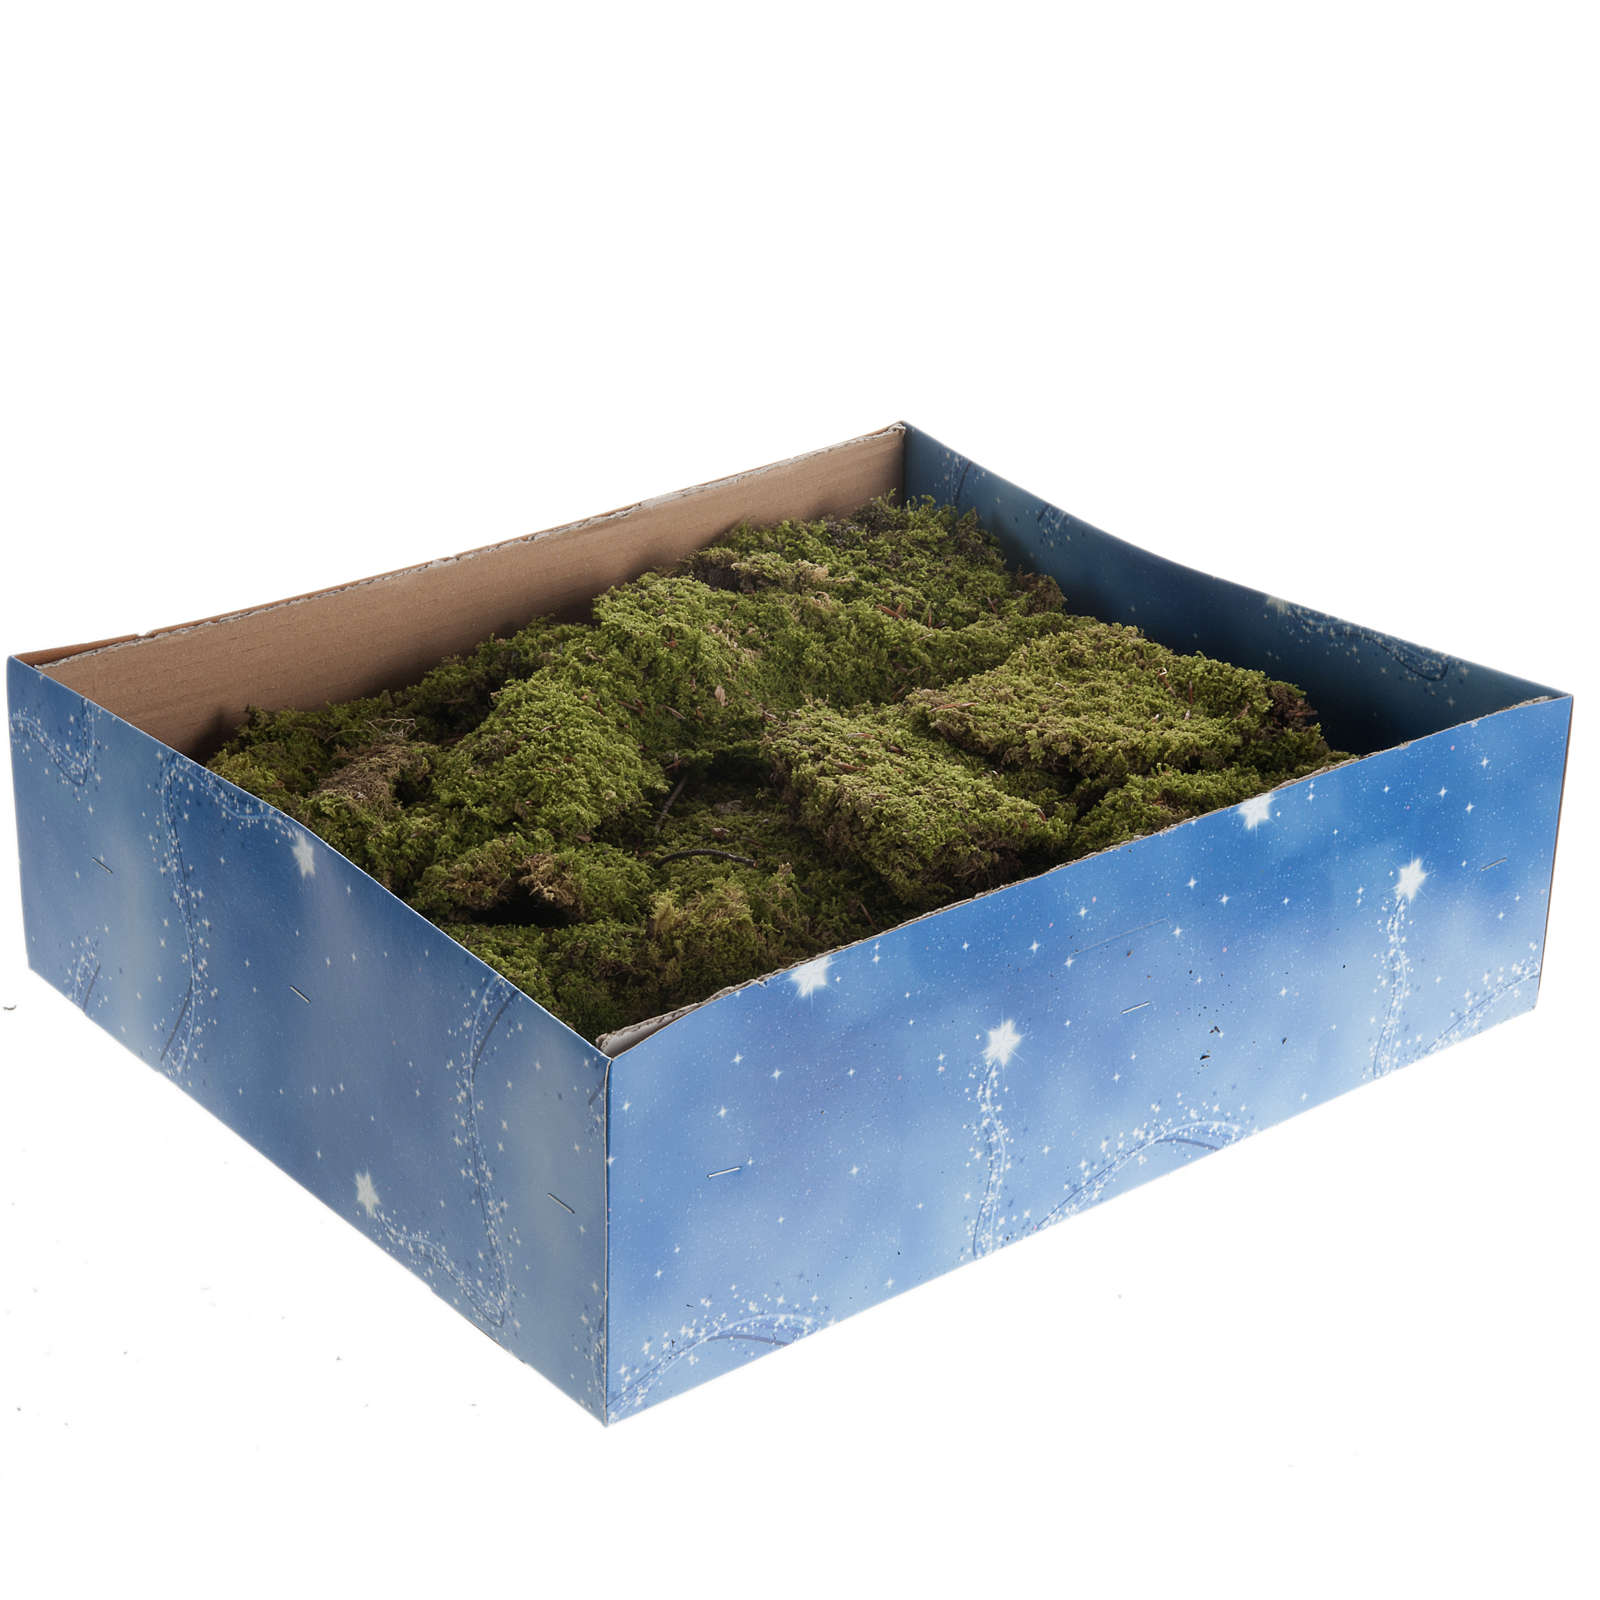 Nativity accessory, natural moss, 500gr 4